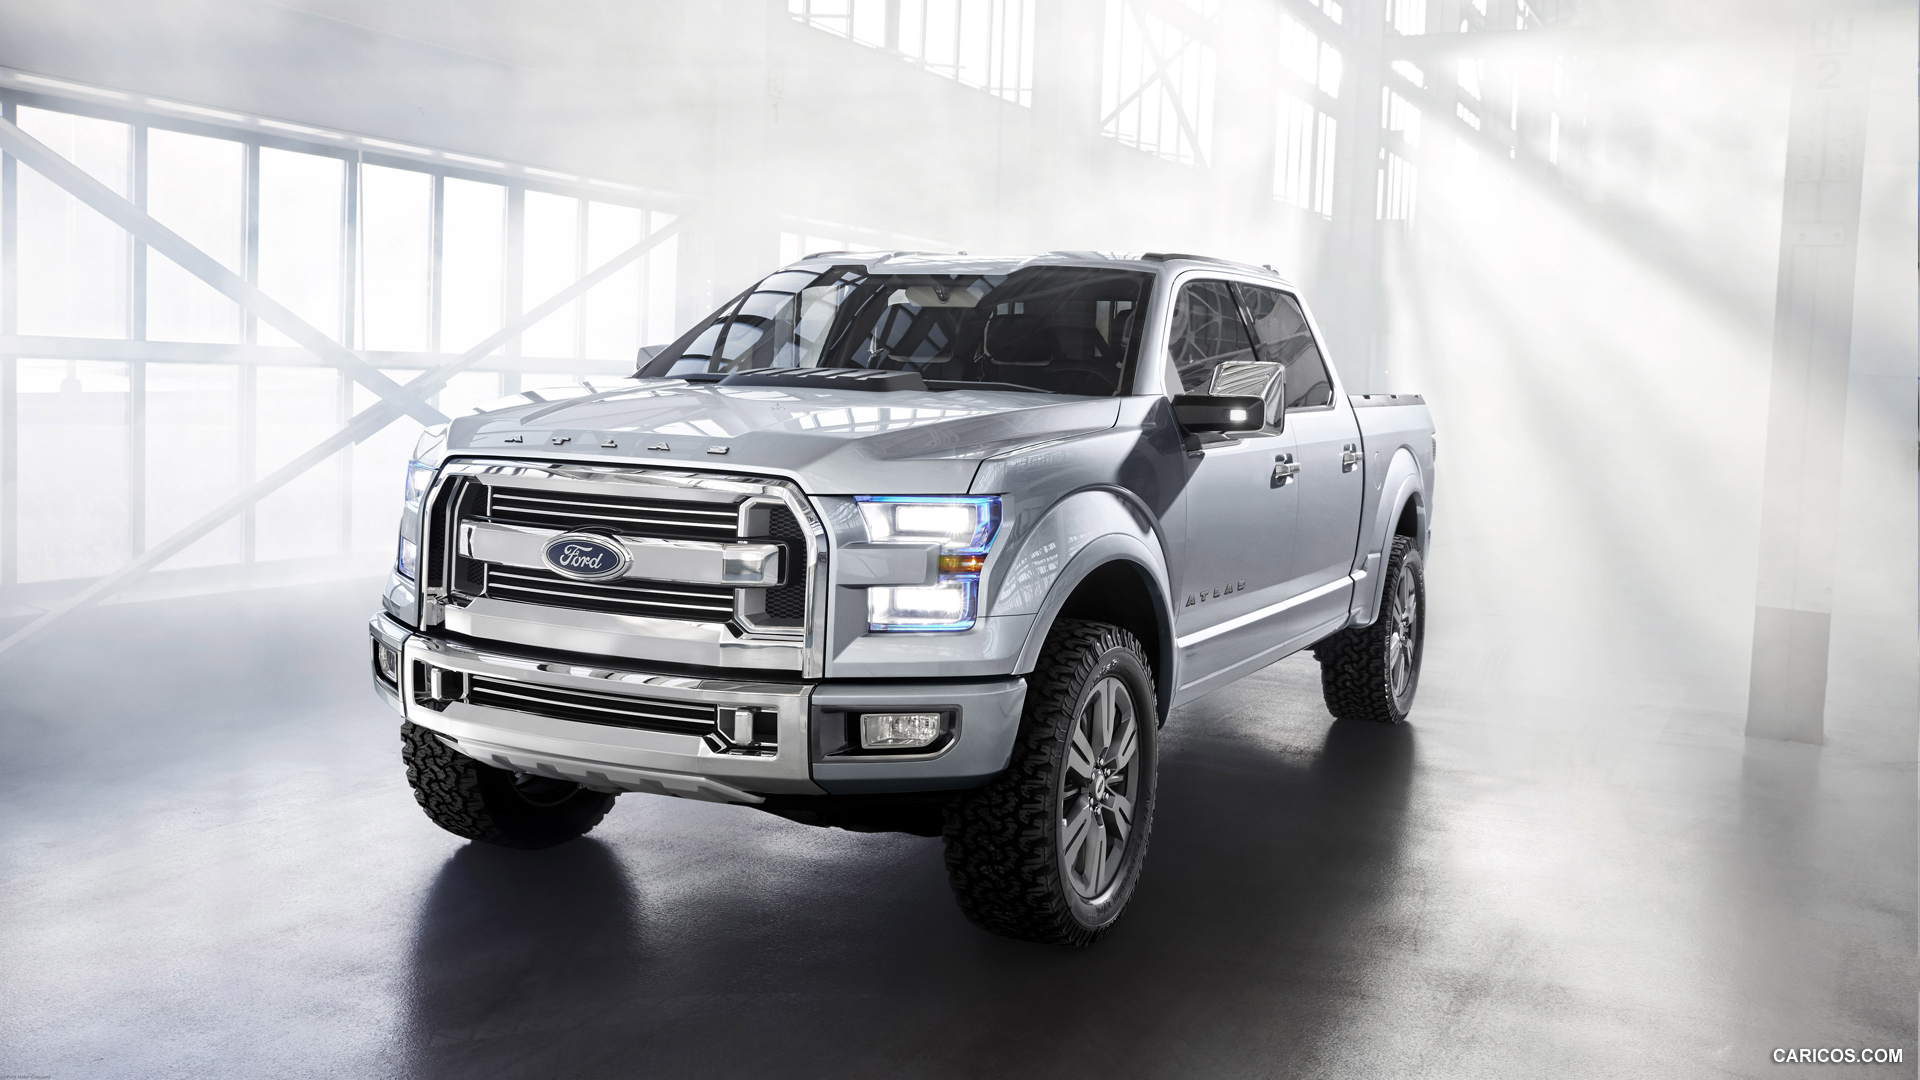 Ford Atlas photo 121621